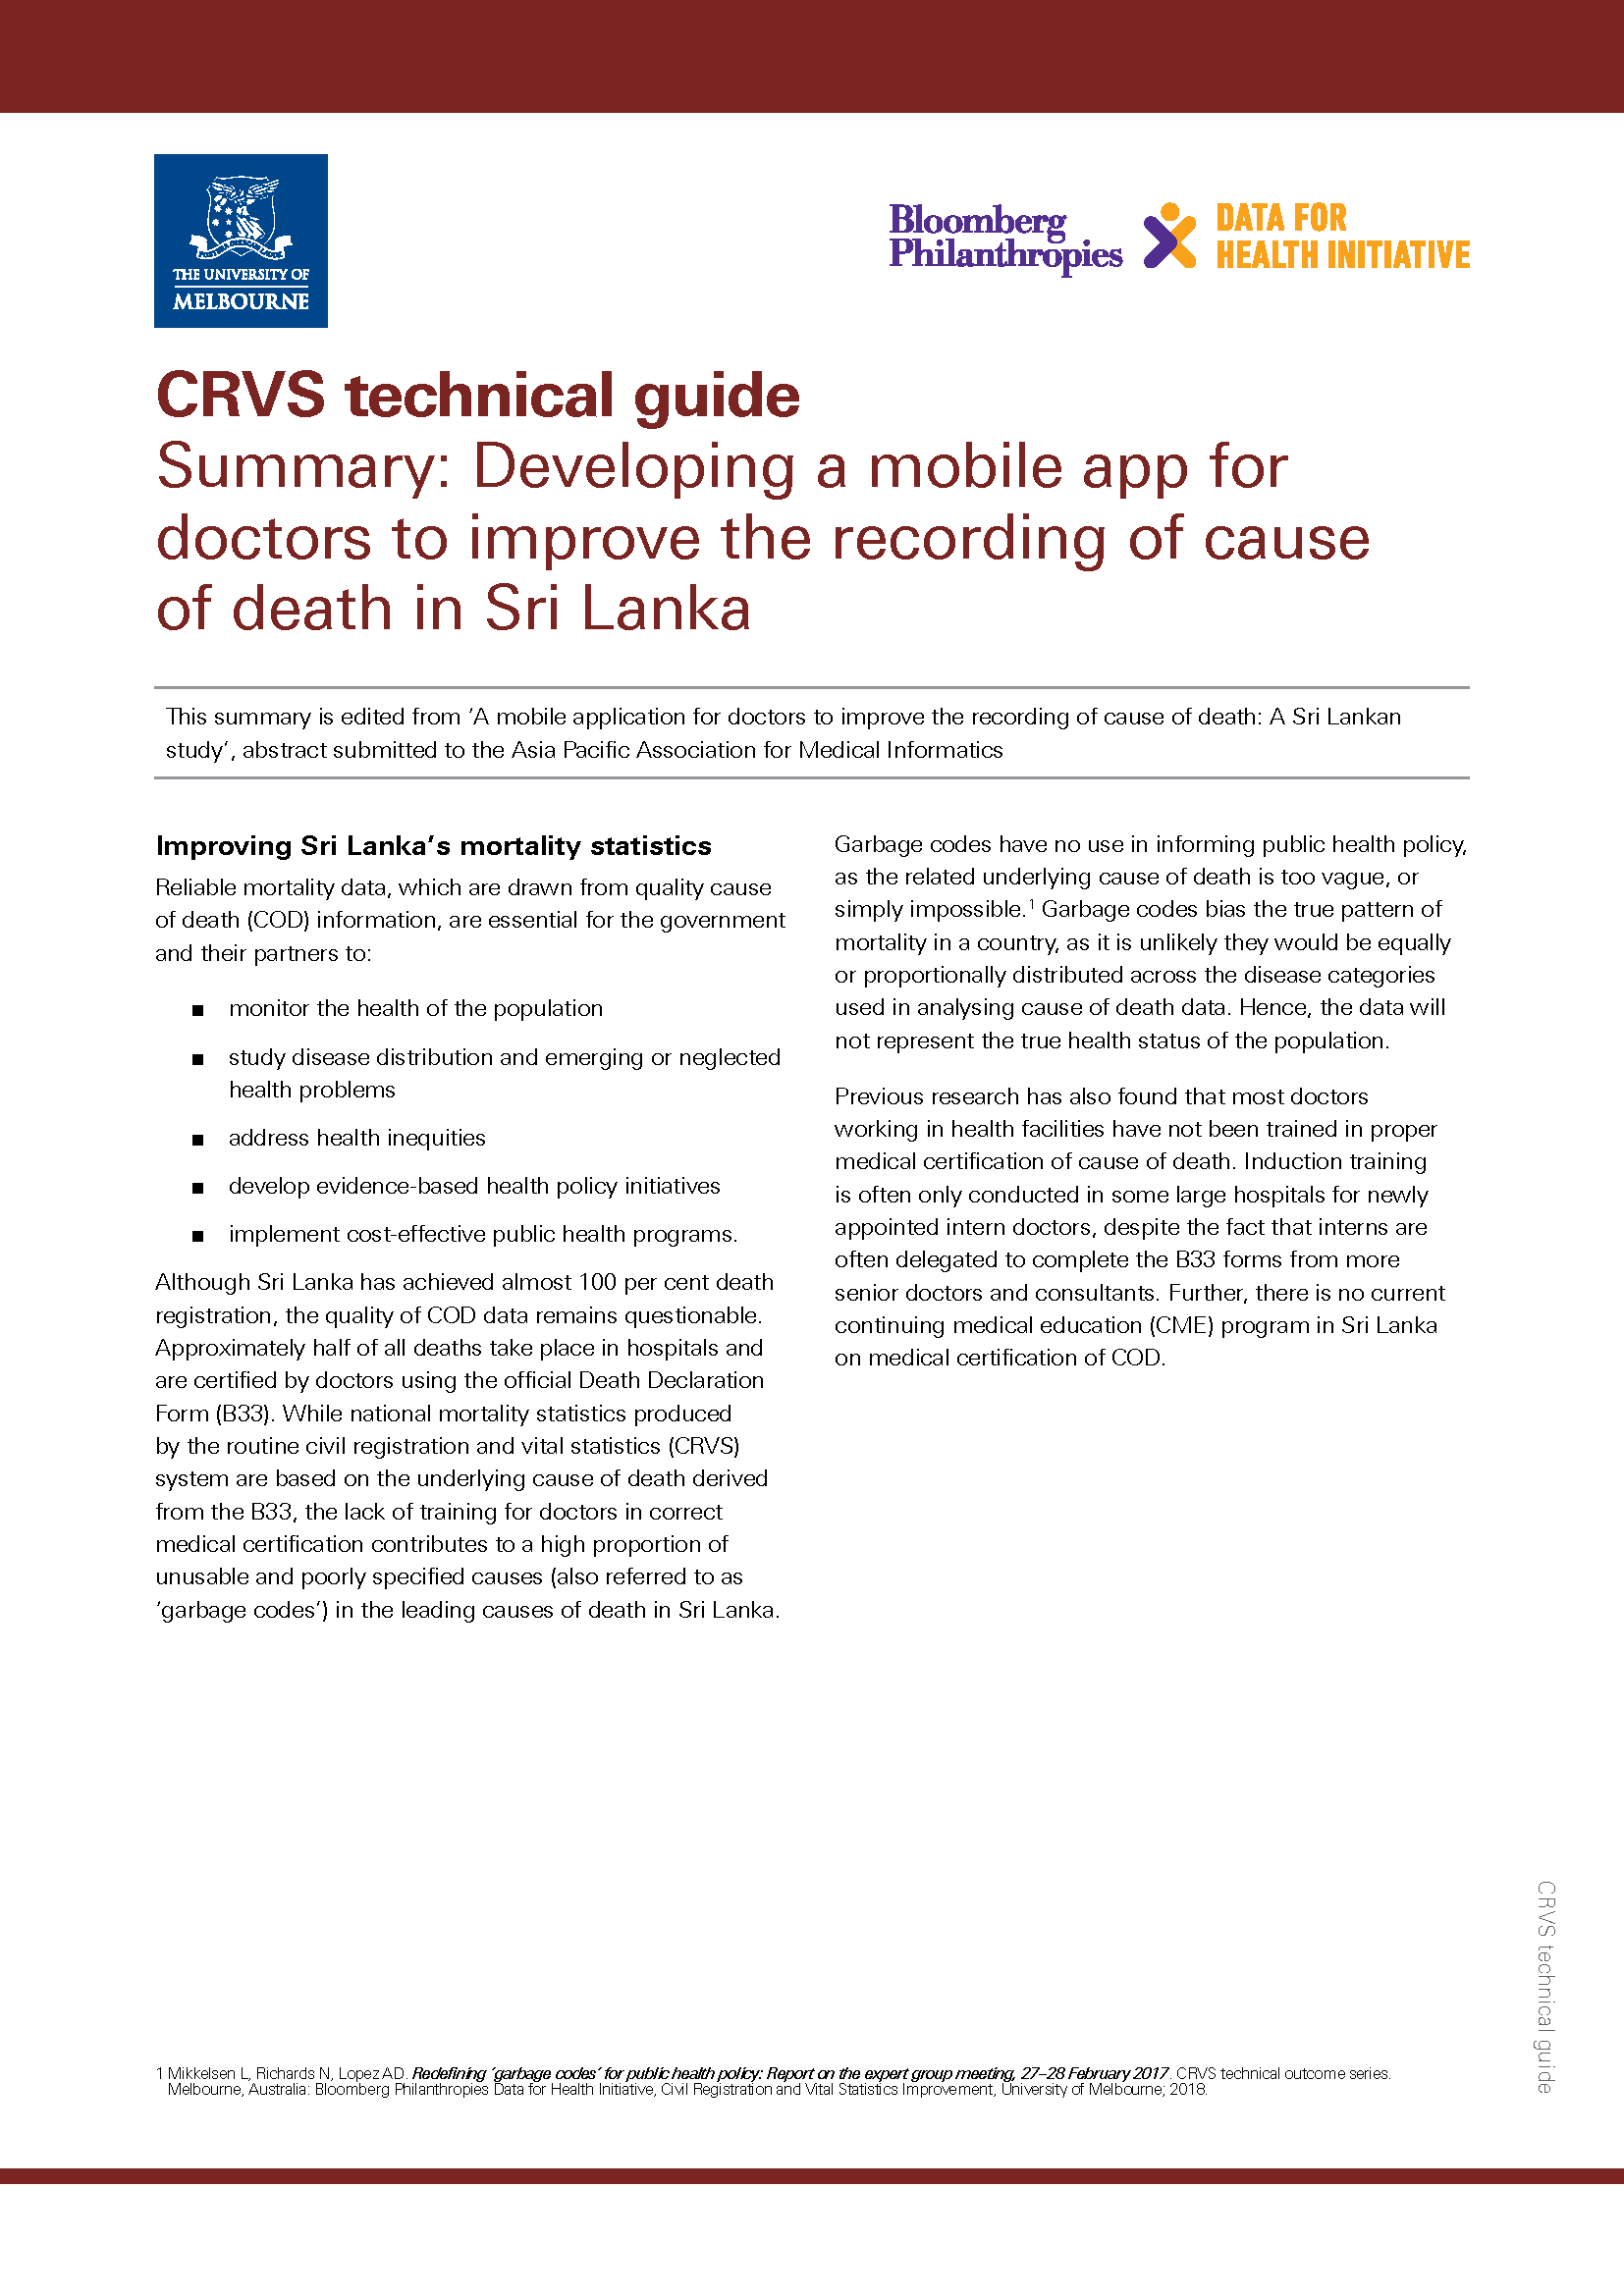 Summary: Developing a mobile app for doctors to improve the recording of cause of death in Sri Lanka thumbnail